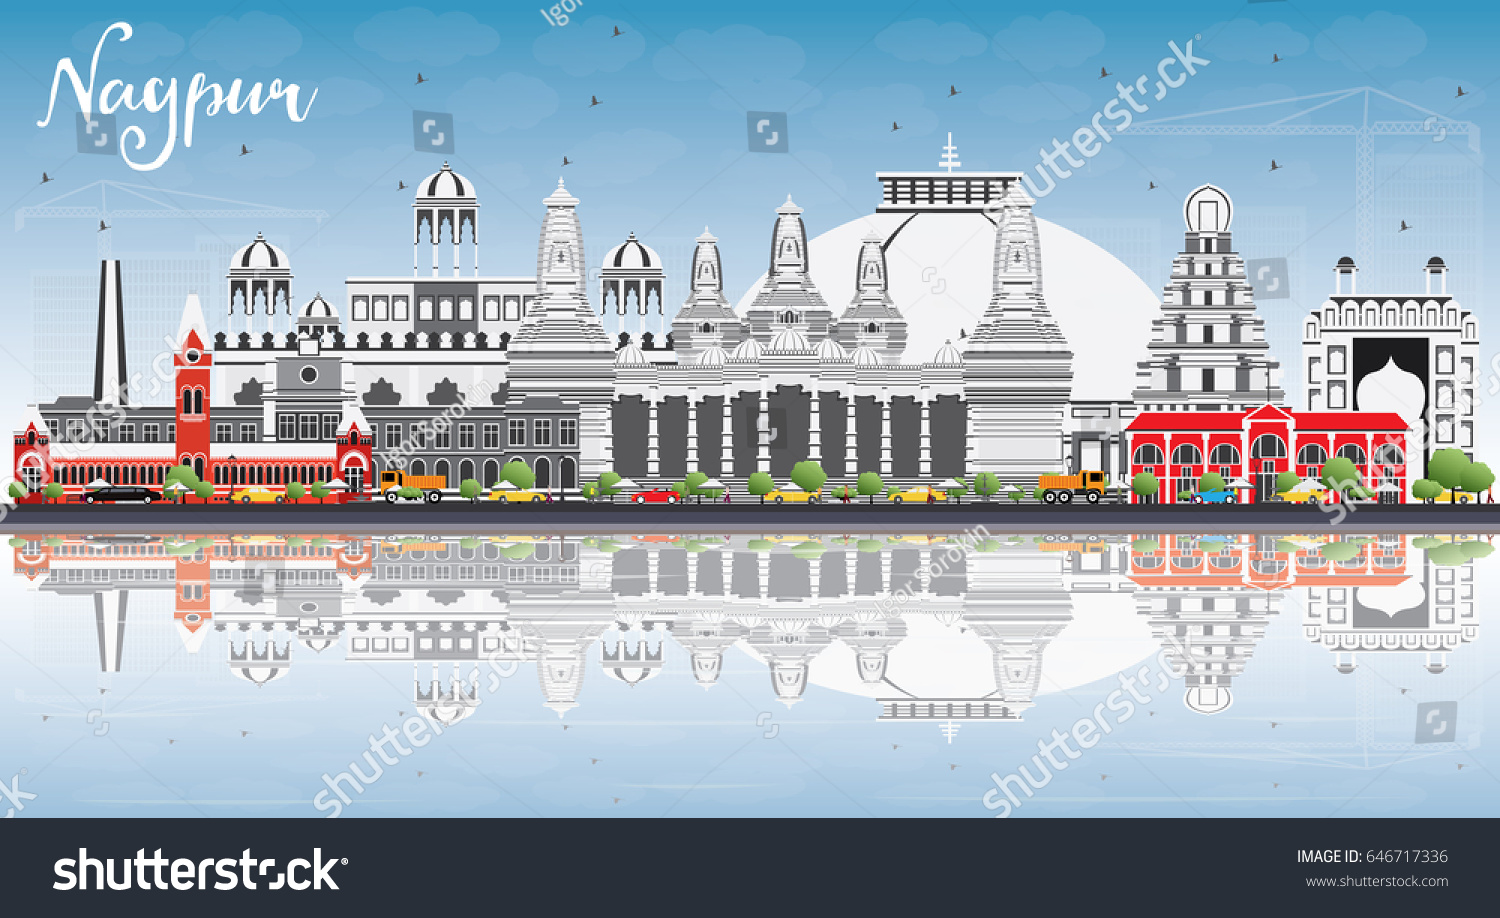 Outline athens skyline with blue buildings and copy space stock vector - Nagpur Skyline With Gray Buildings Blue Sky And Reflections Business Travel And Tourism Concept